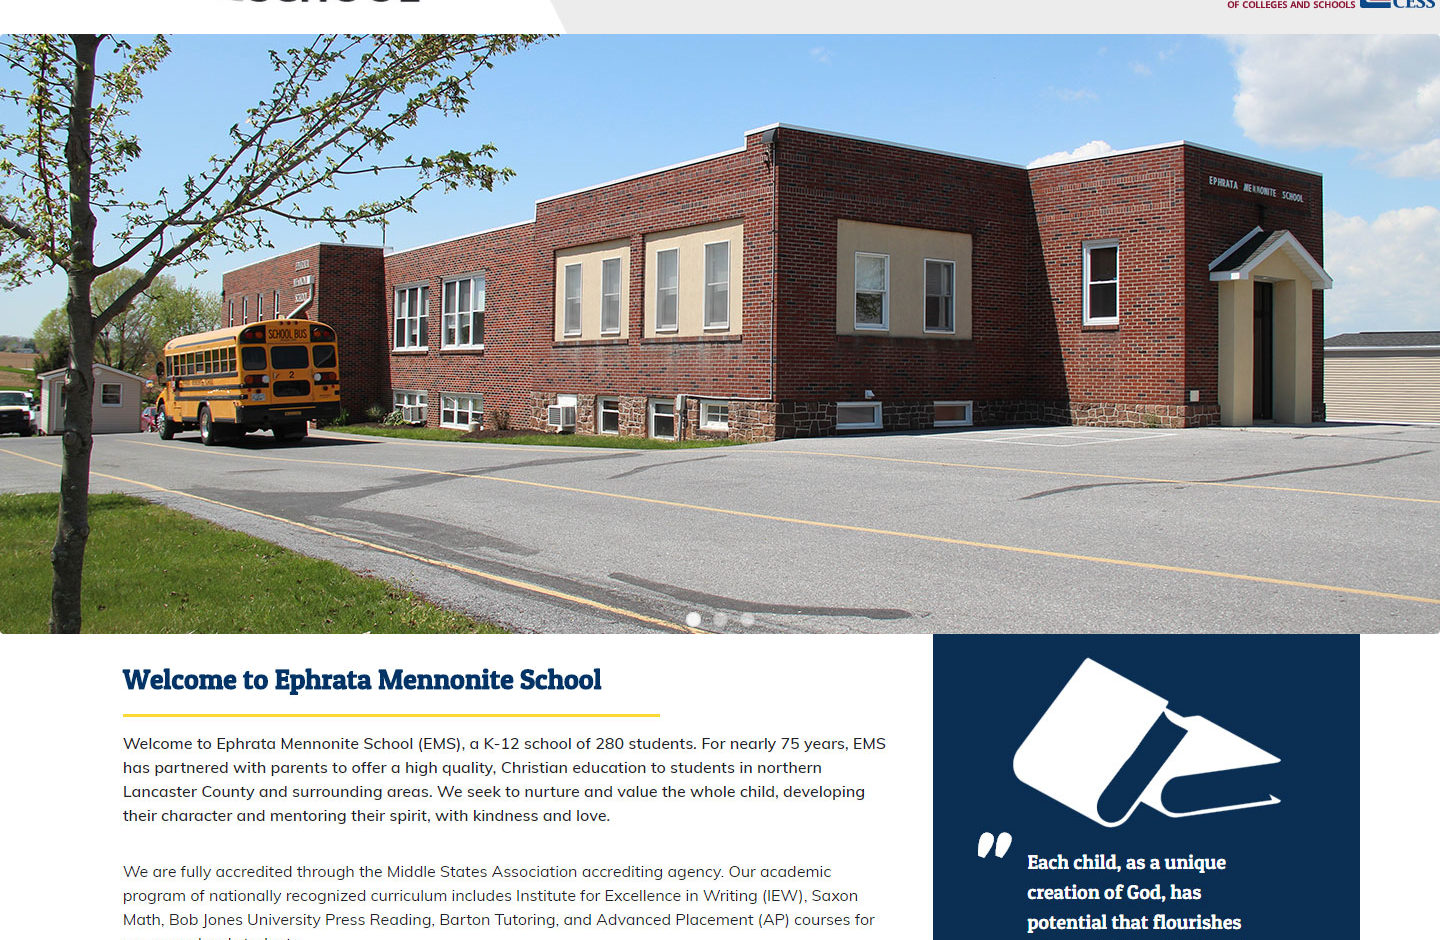 Ephrata Mennonite School